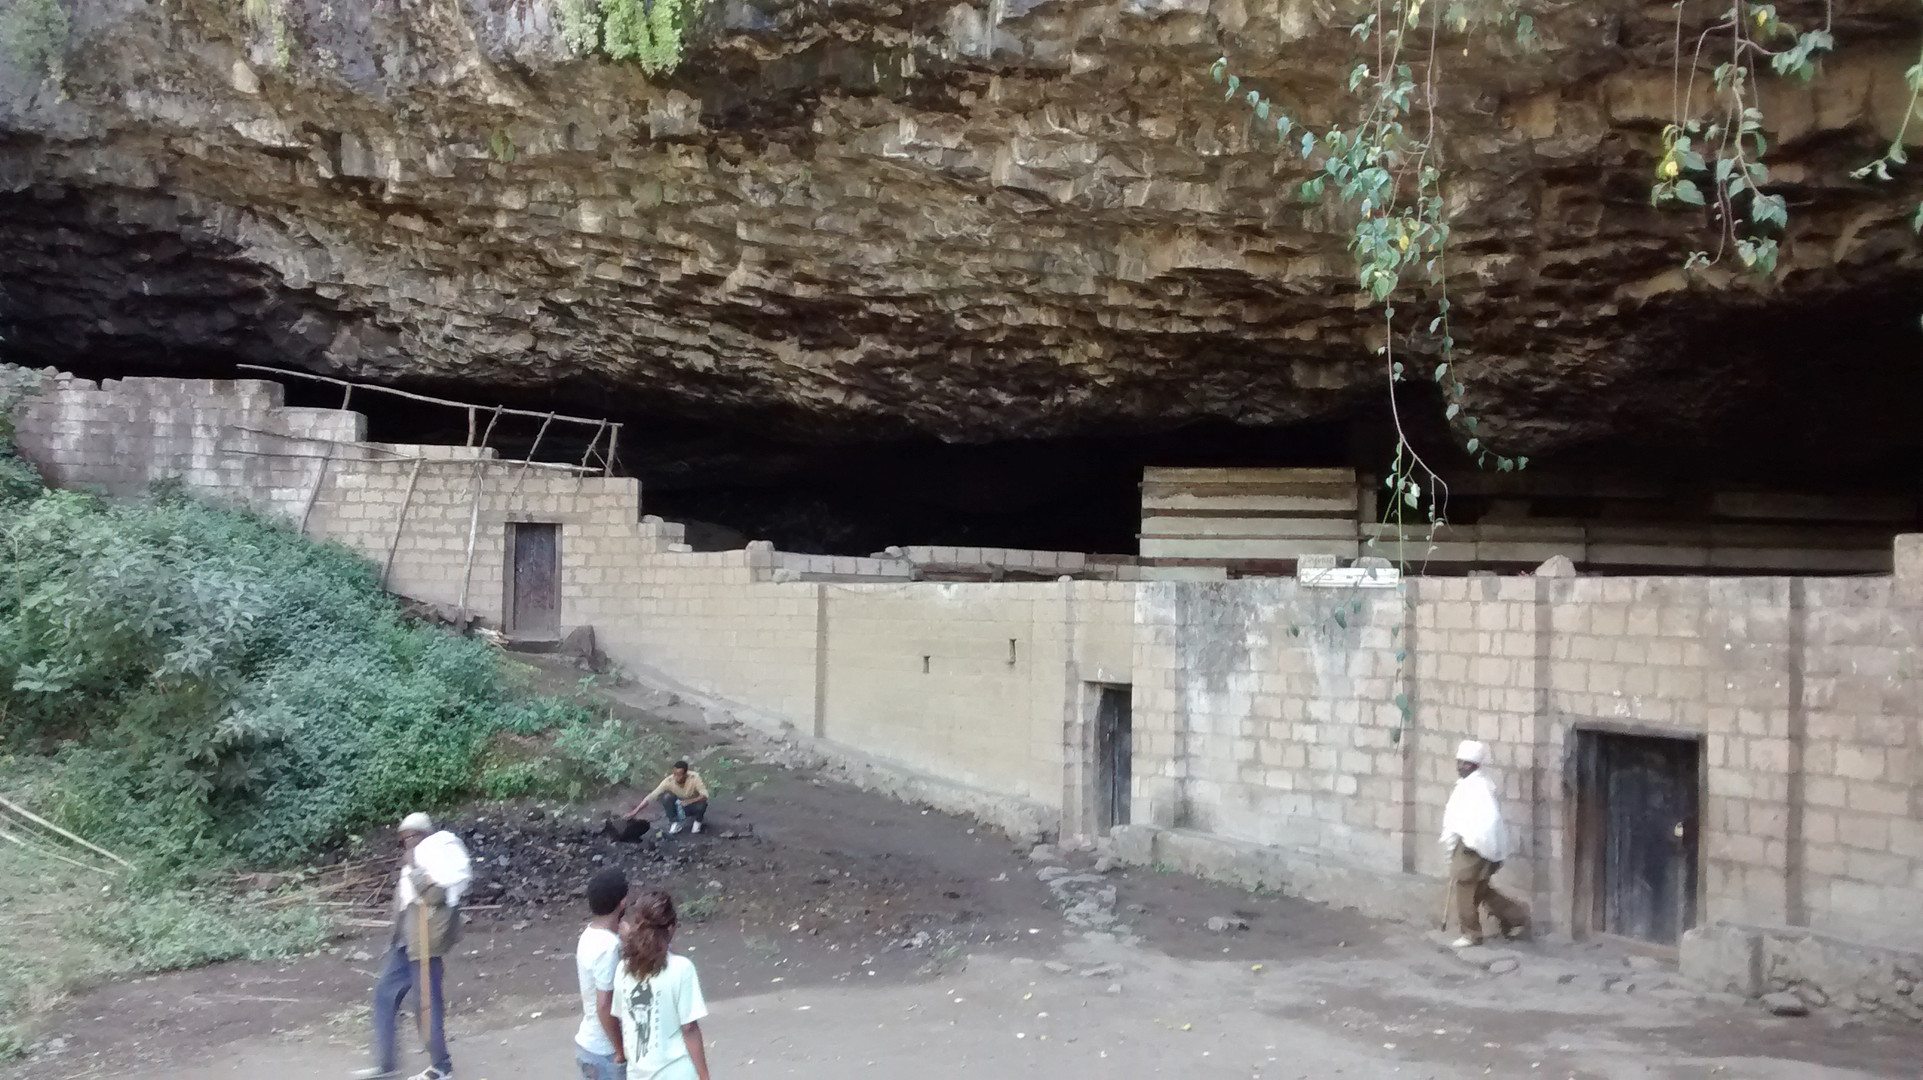 The mouth of the cave containing Yǝmrǝḥannä Krǝstos church, just visible behind the modern wall